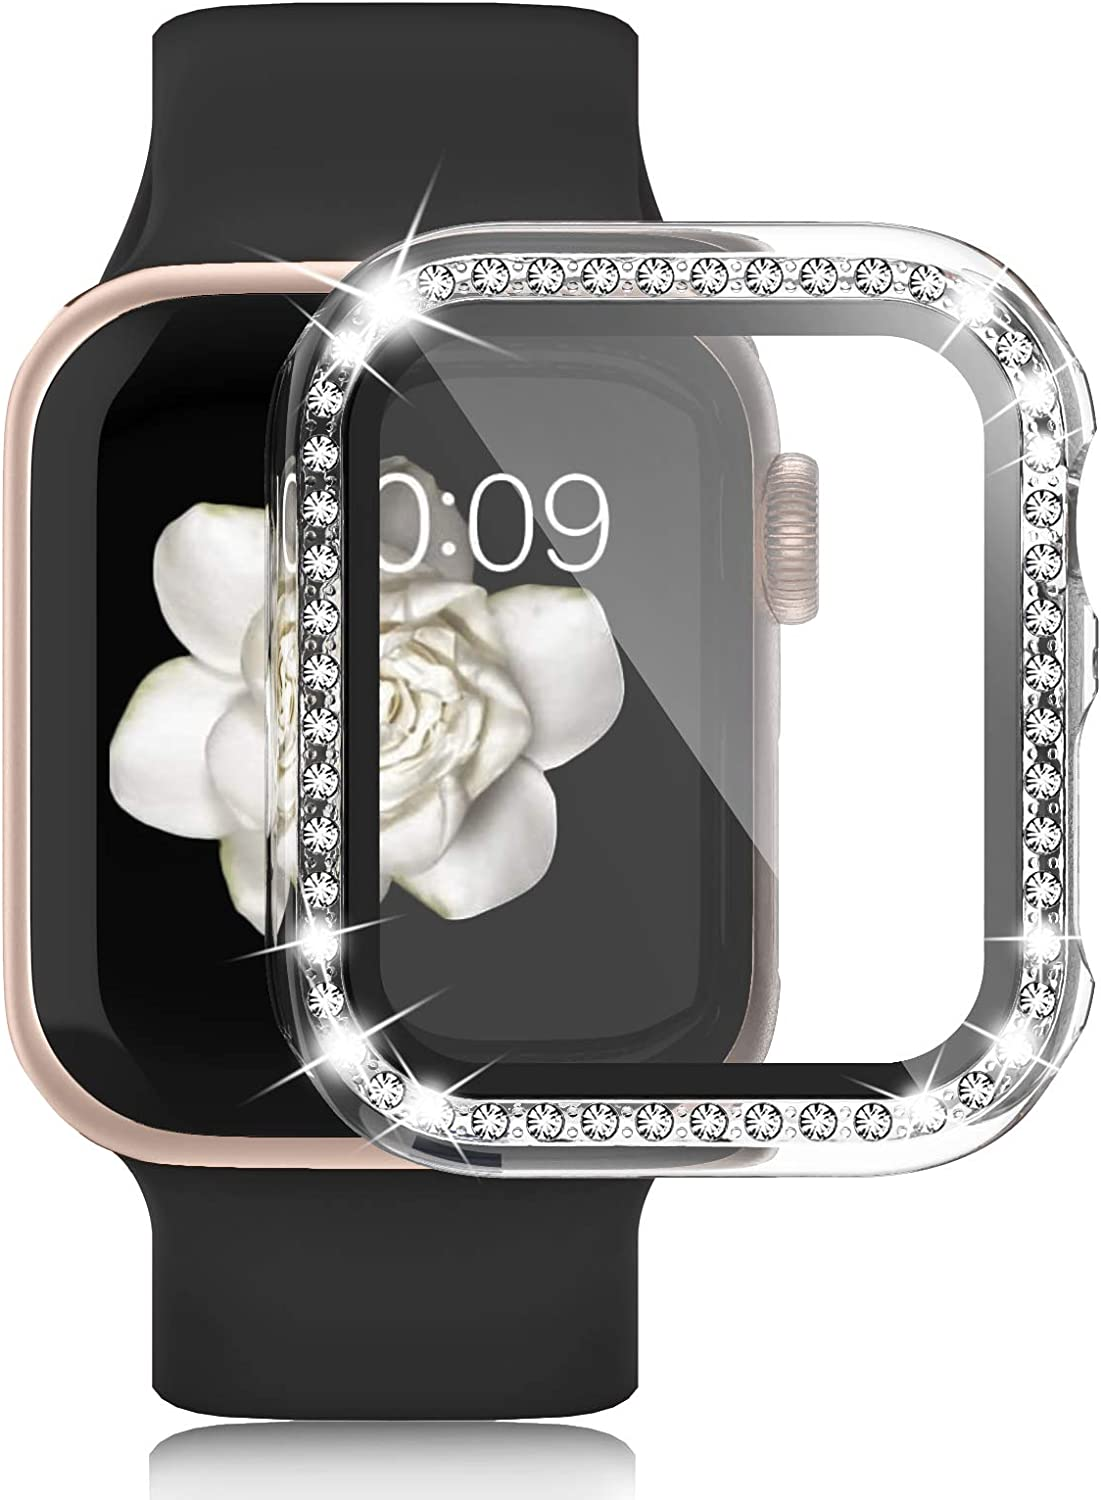 Apple Watch Case with Tempered Glass Screen Protector for iWatch 44mm Series 6/5/4/SE, Anti-Scratch Hard PC Bumper Full Body Cover Bling Diamond Rhinestone Frame for Women Girls Accessories